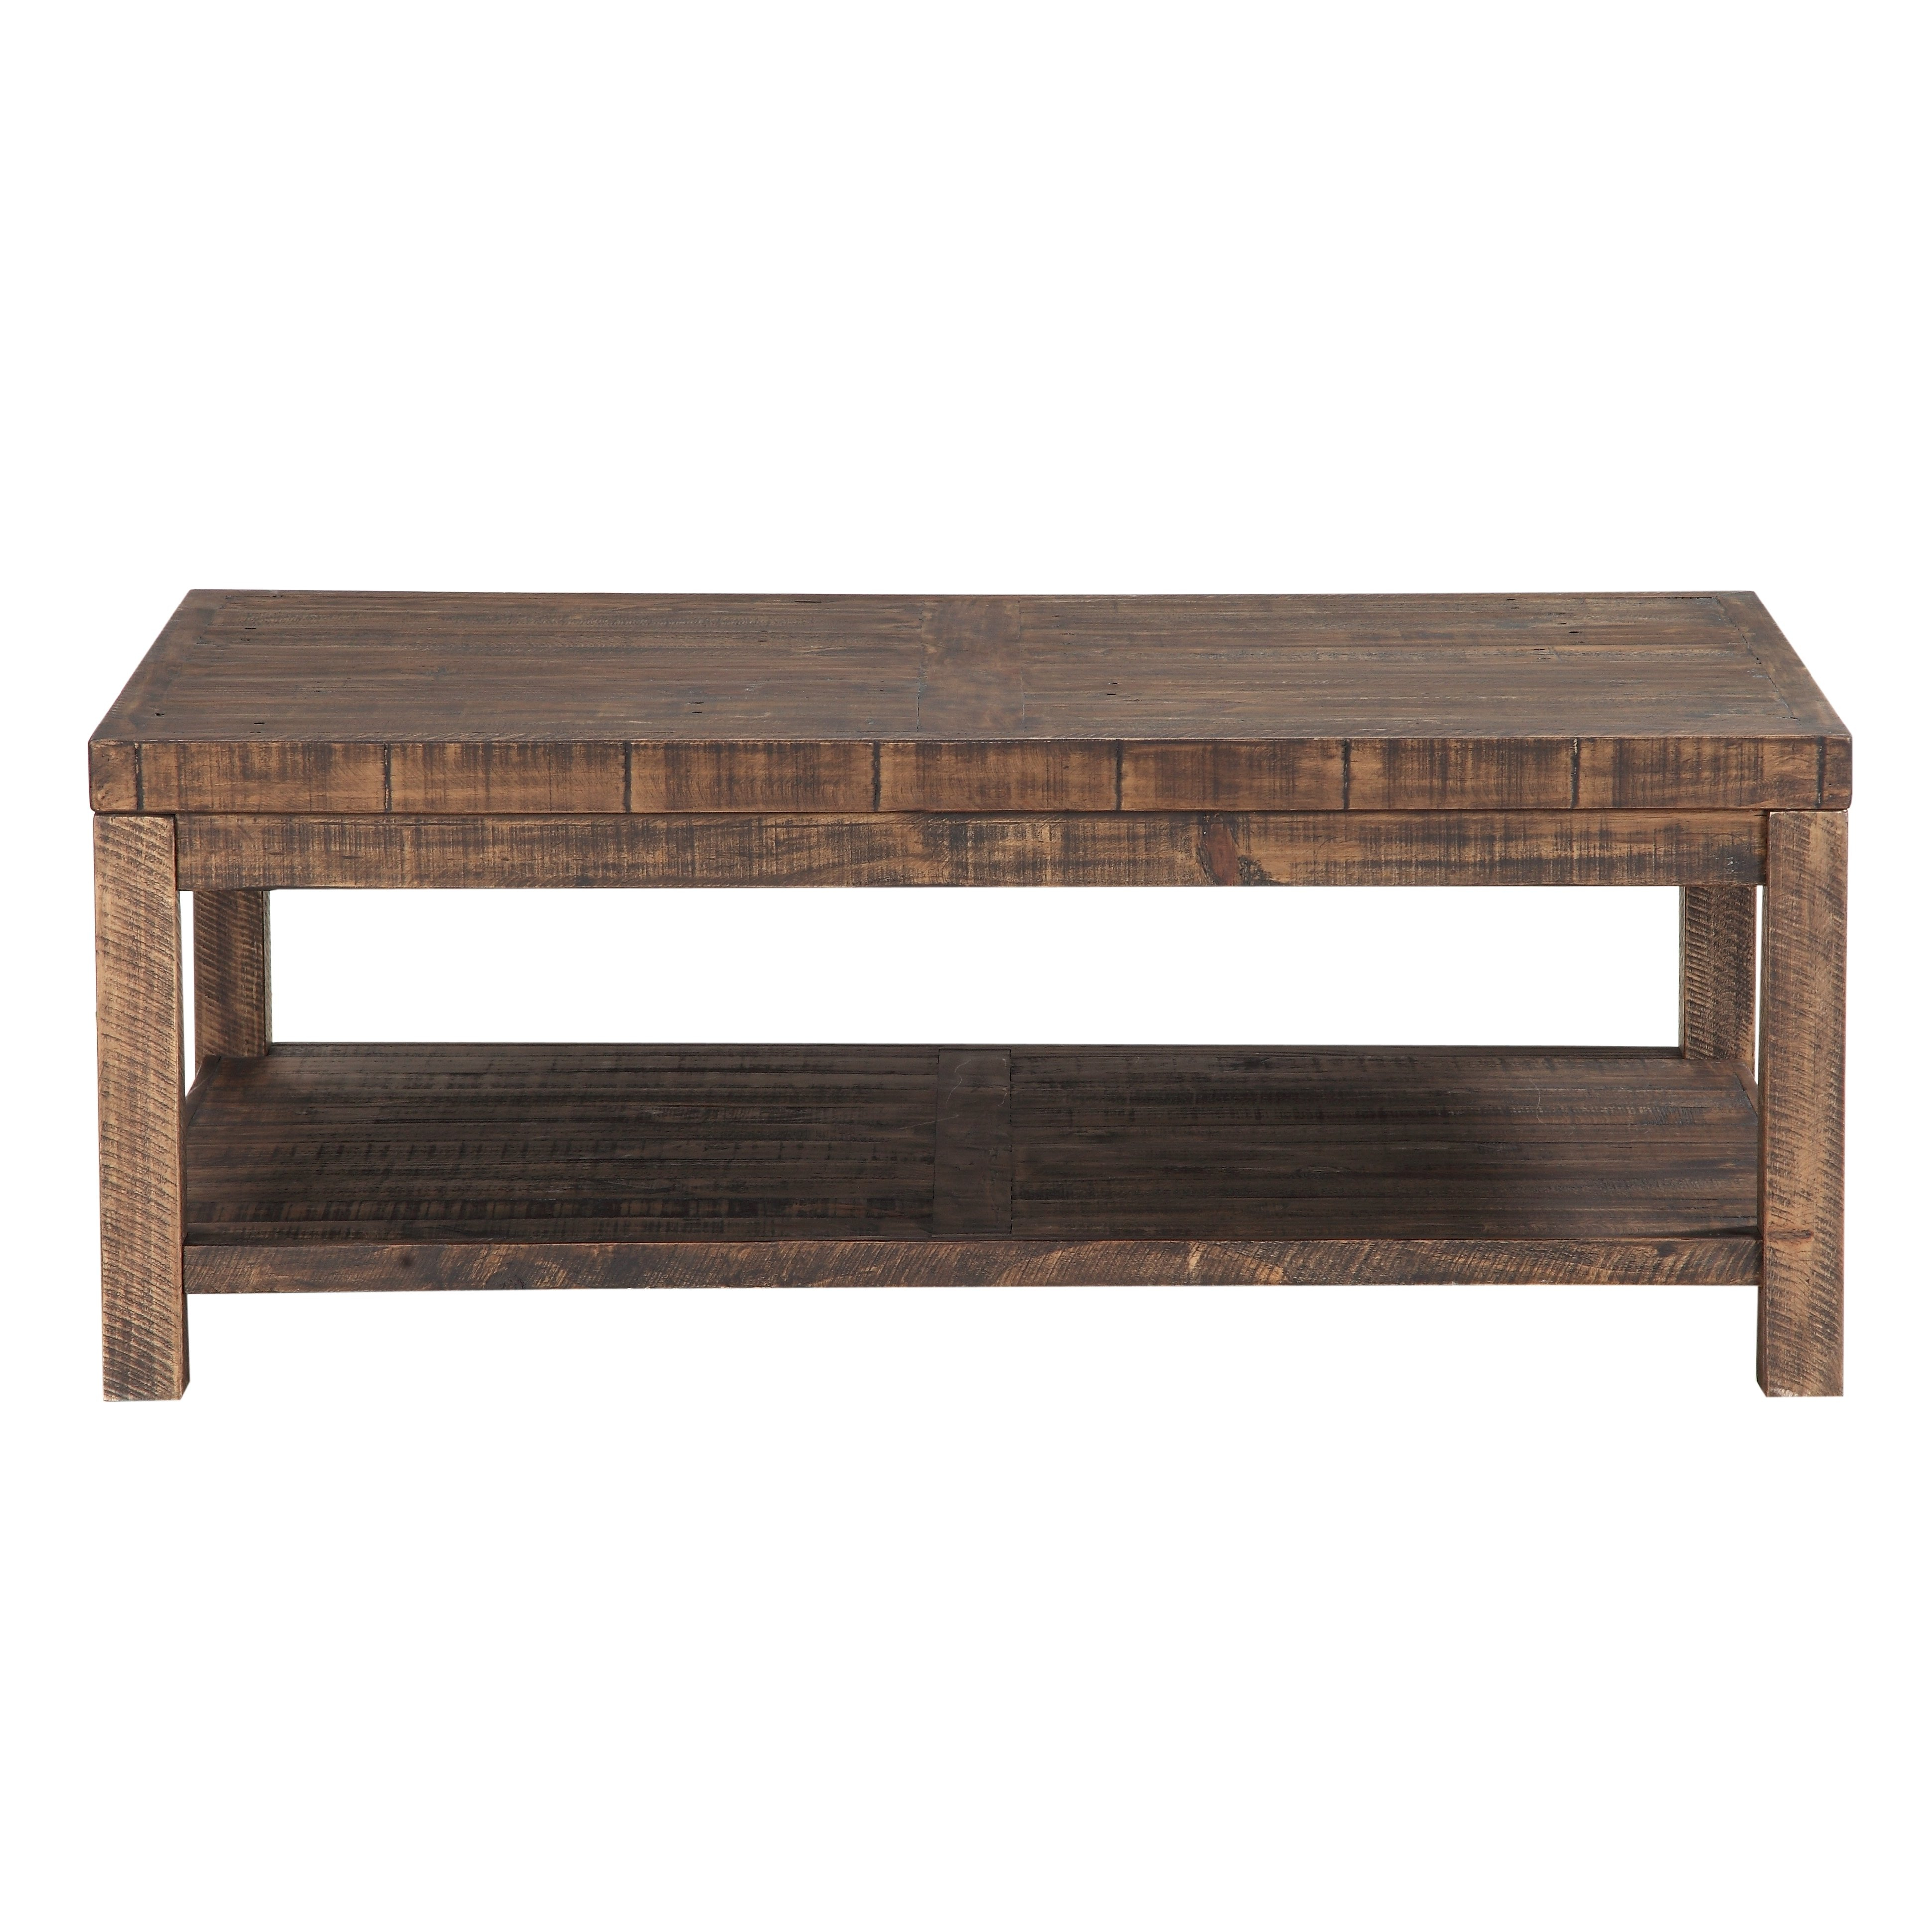 Millwood Pines Stamant Reclaimed Wood Coffee Table Reviews Wayfair throughout proportions 3880 X 3880